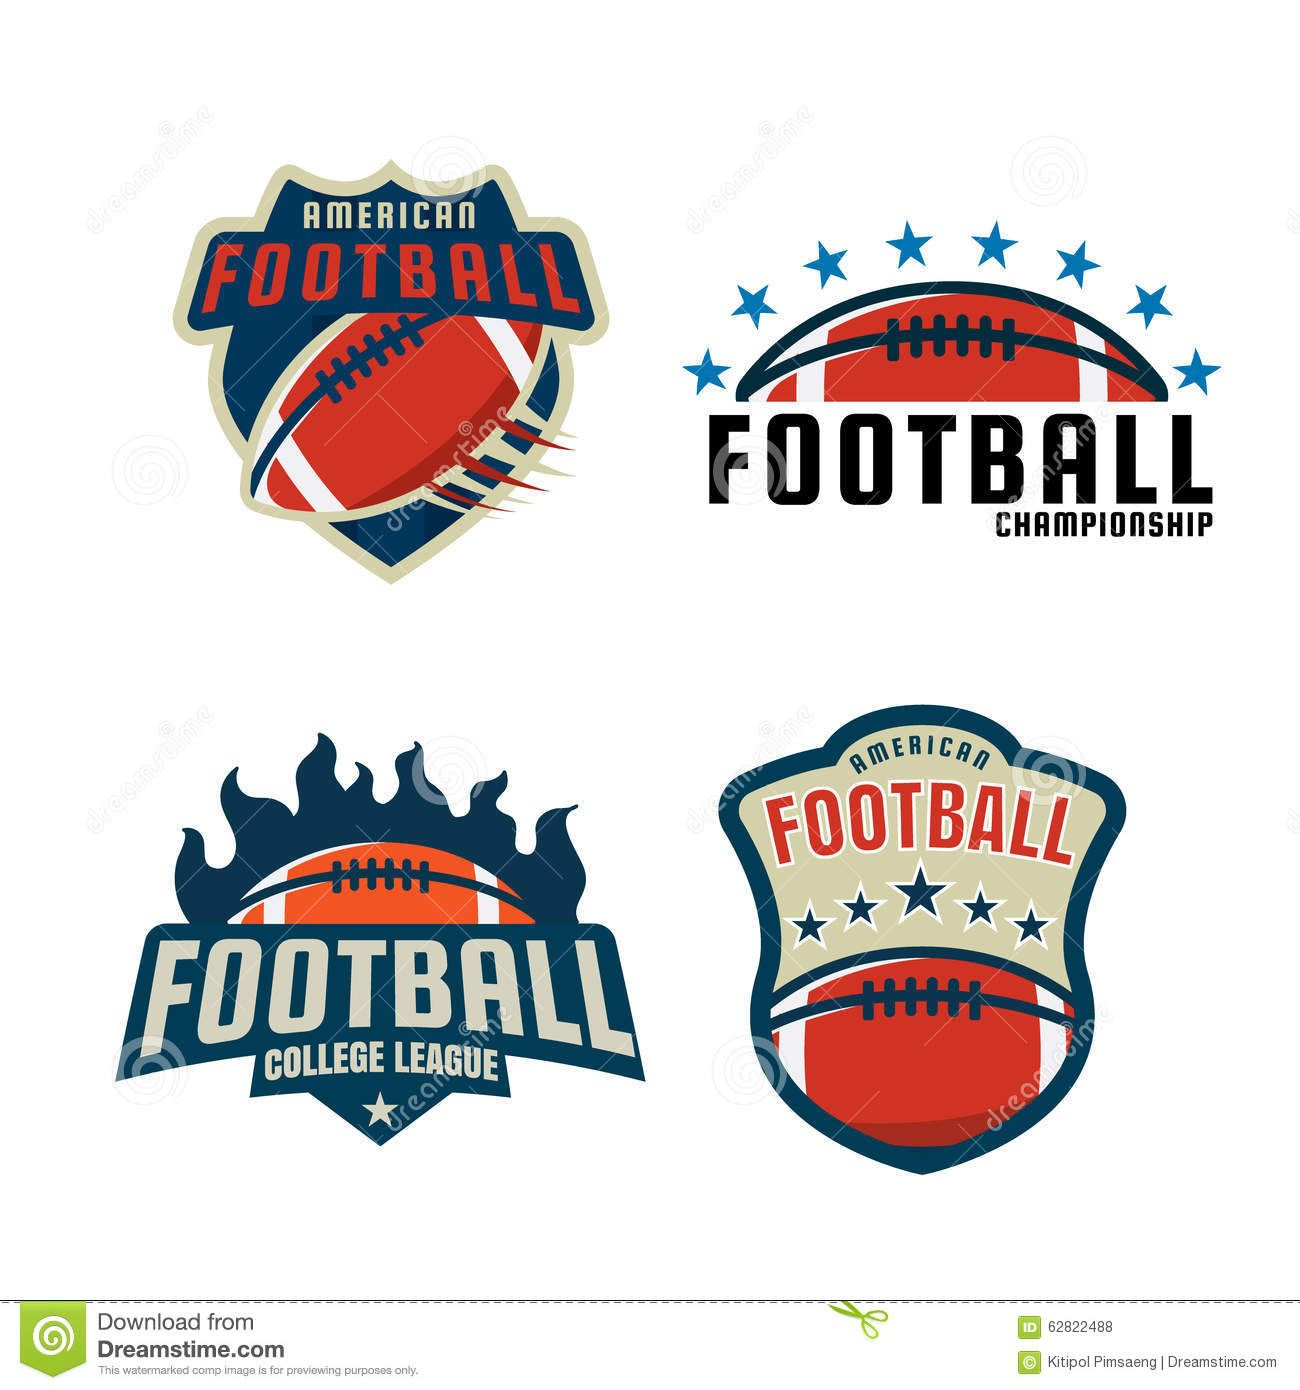 image result for american football leagues logos